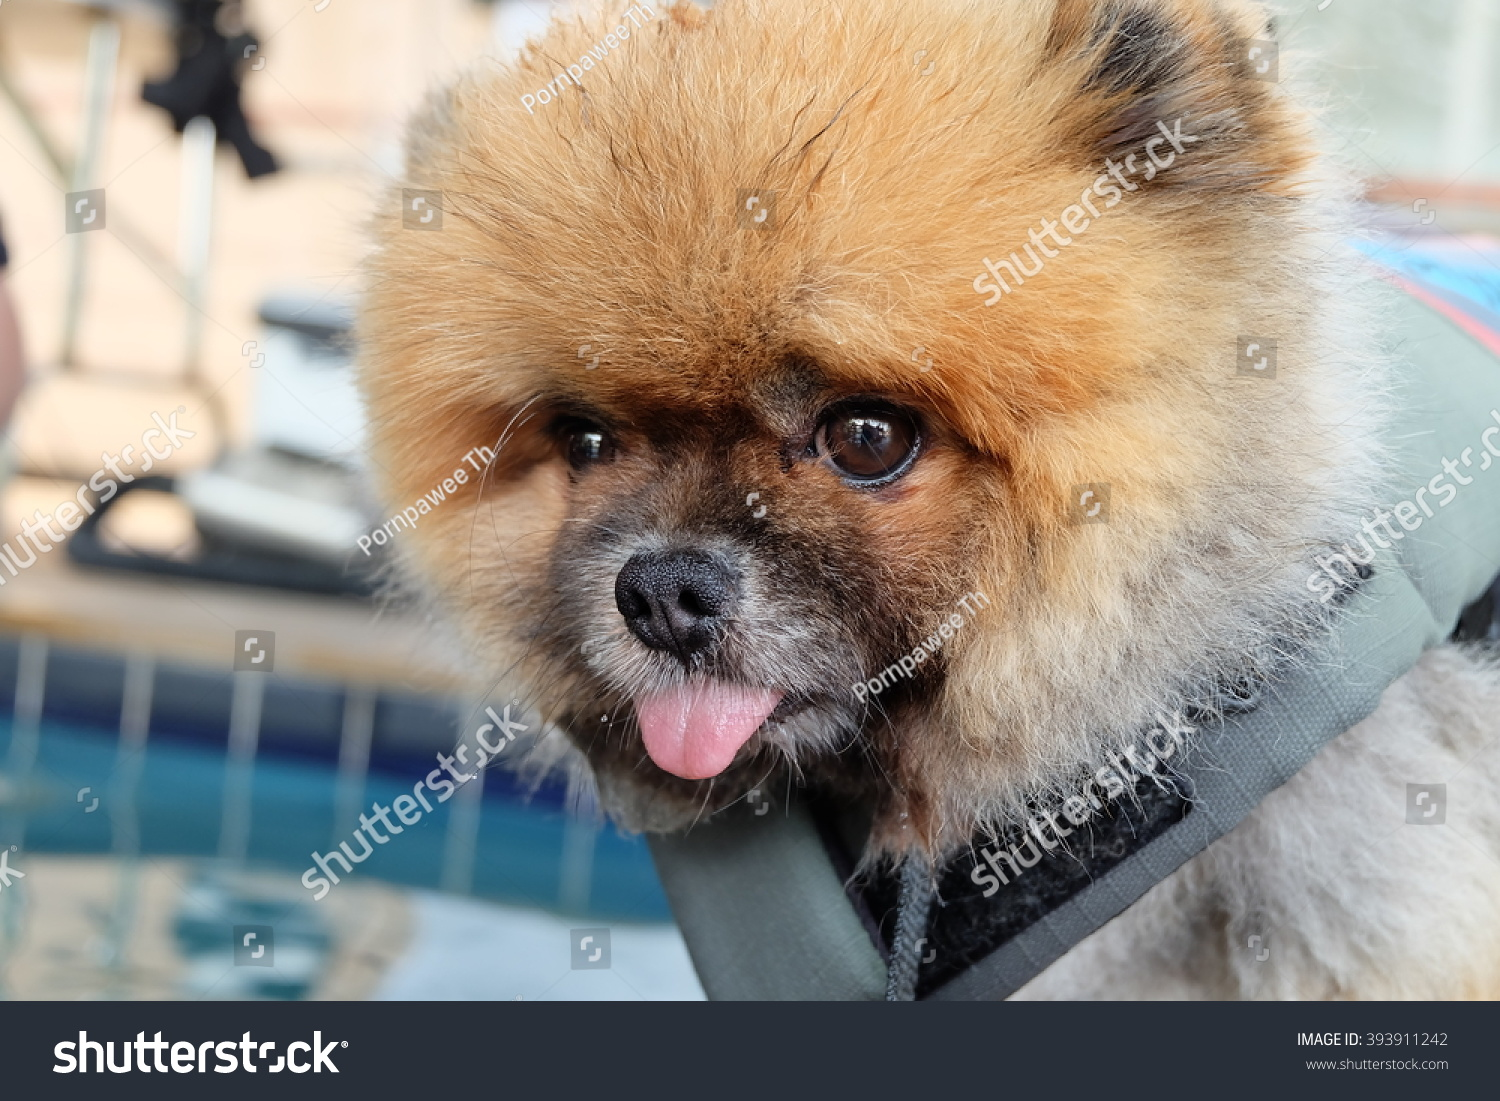 Cute dog make funny face stock photo 393911242 shutterstock cute dog make funny face voltagebd Image collections